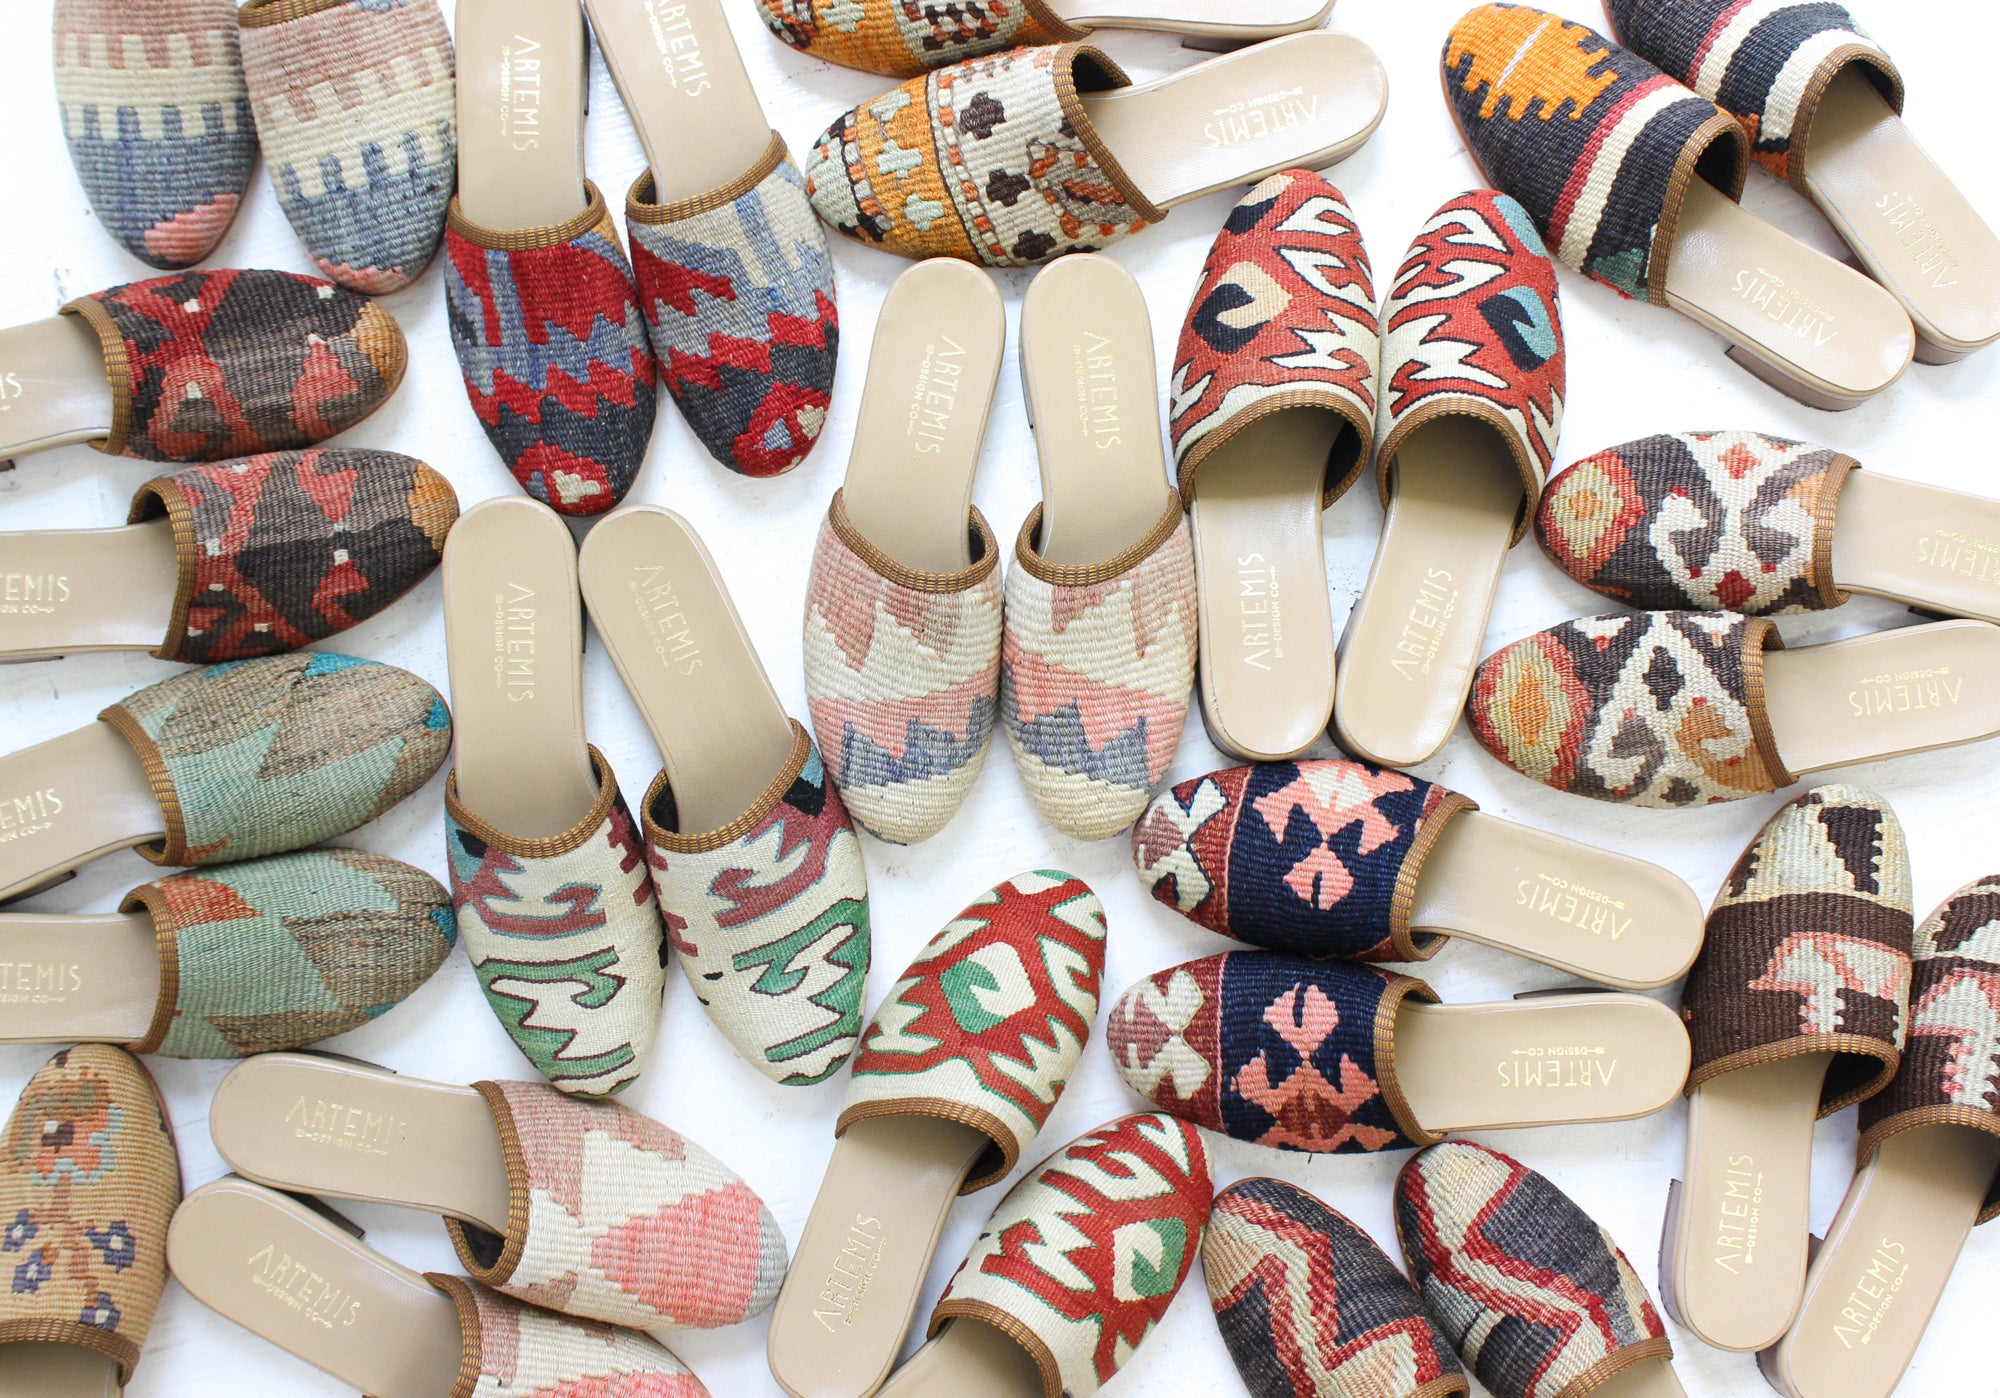 Flat lay image of woven mule-style shoes